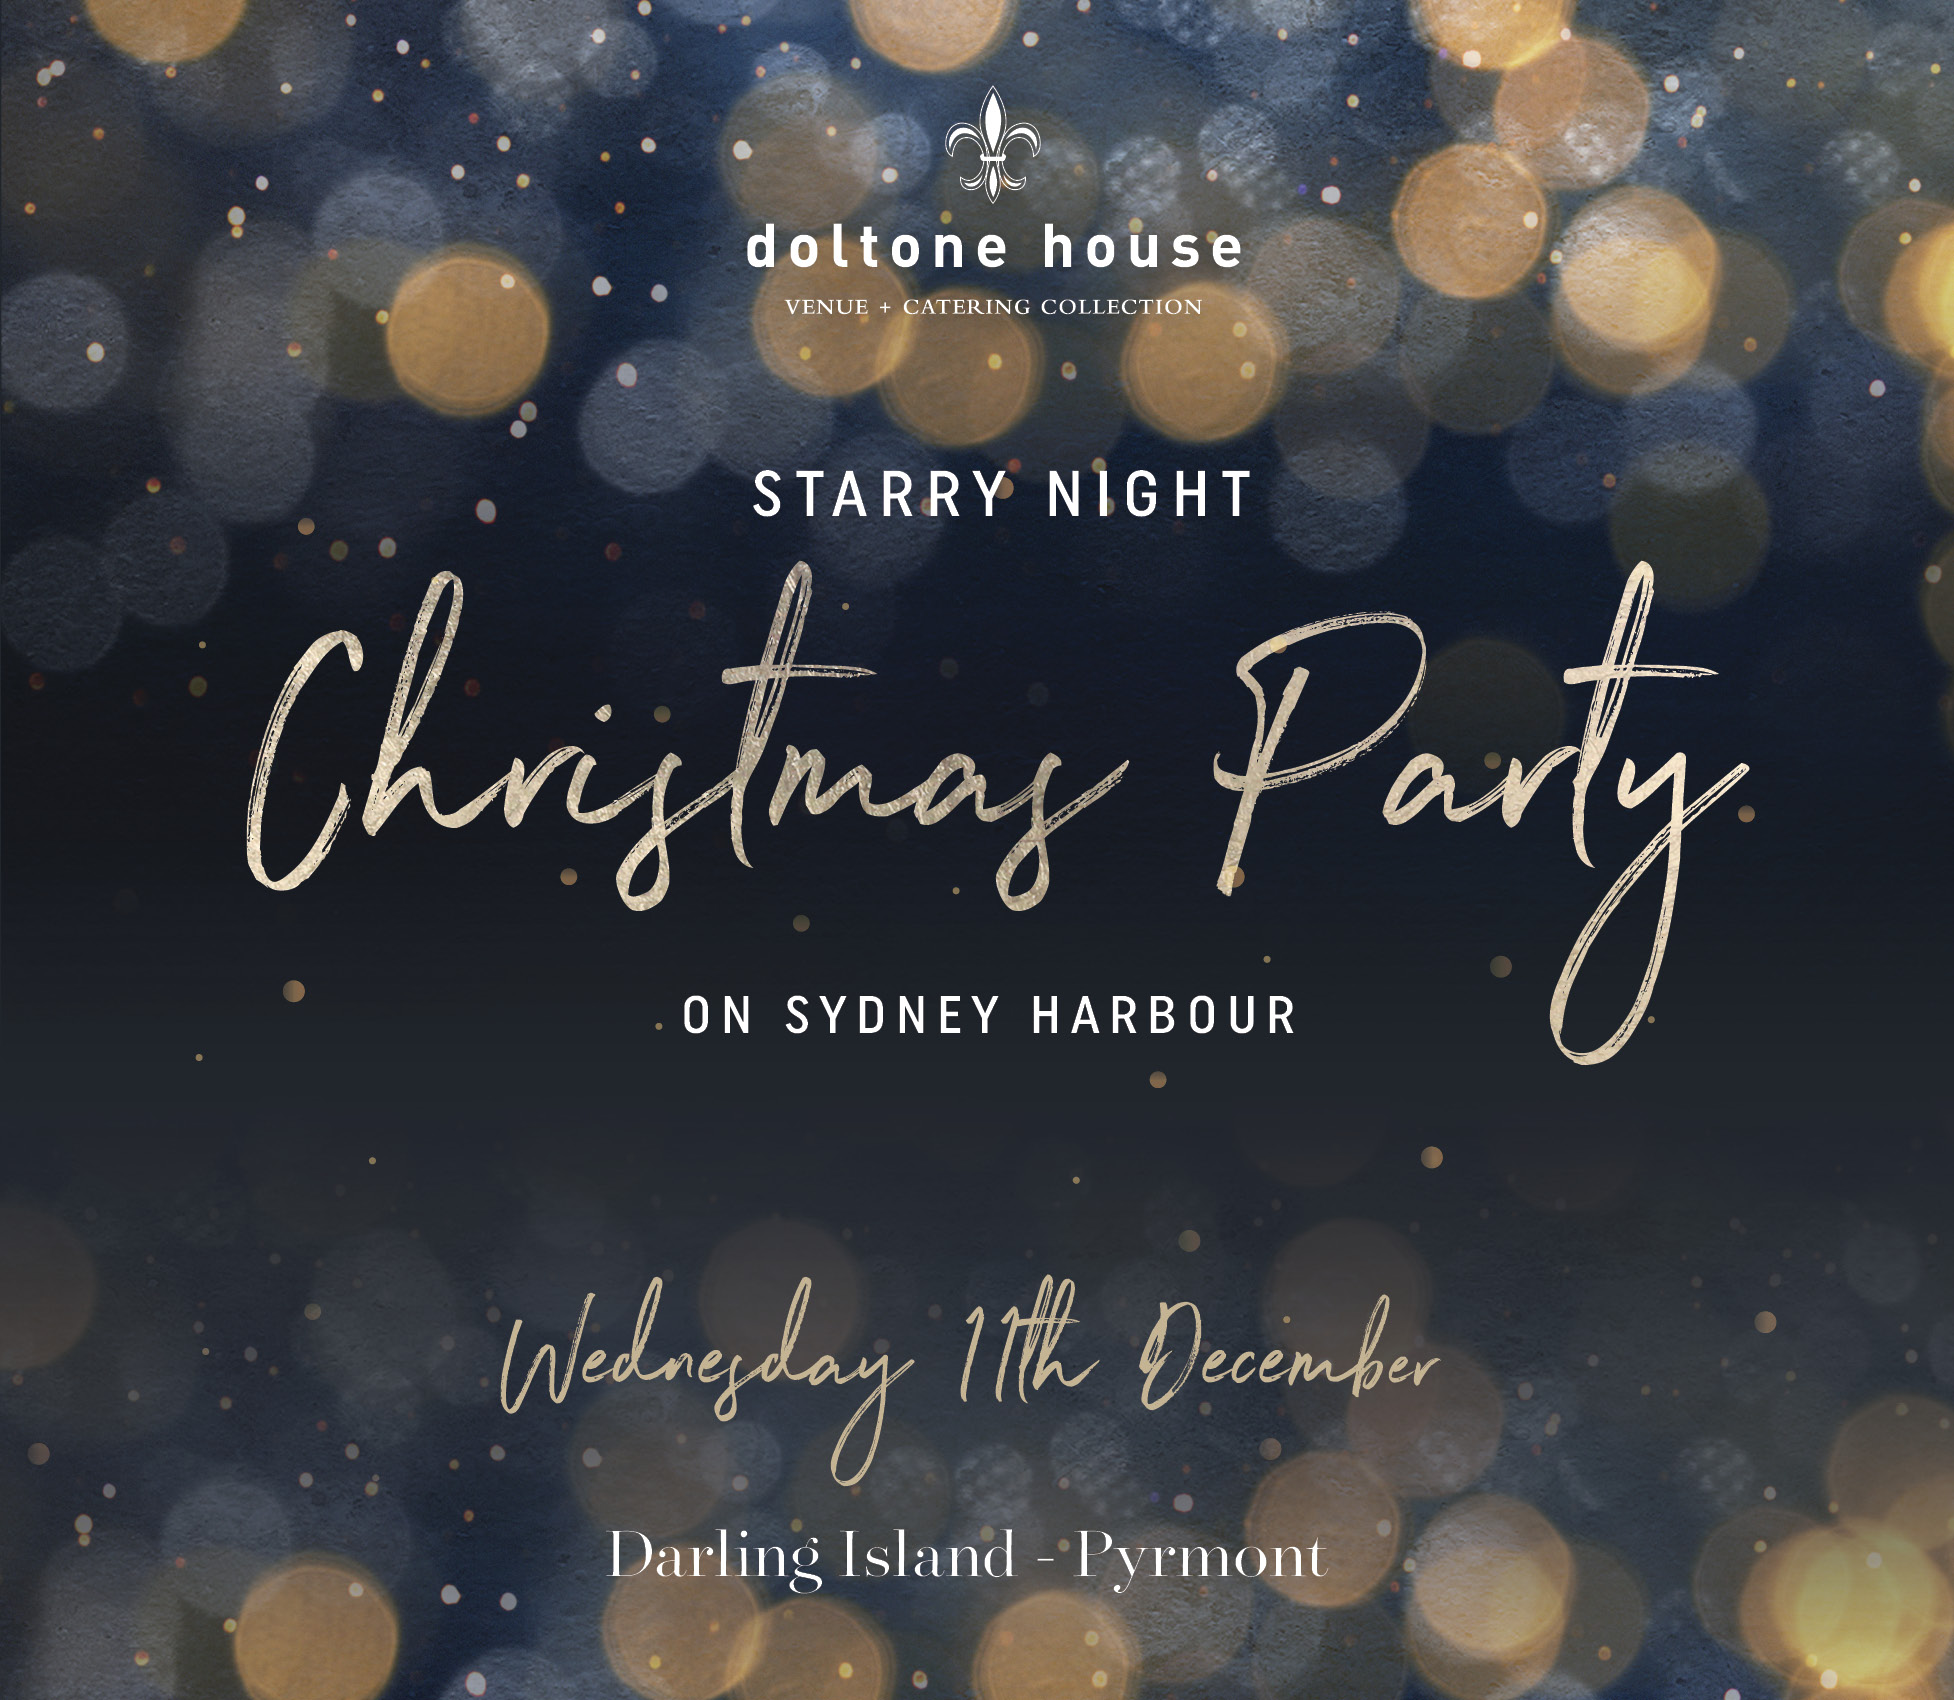 Tickets for Christmas Party 2019 at Doltone House in Pyrmont from Ticketbooth